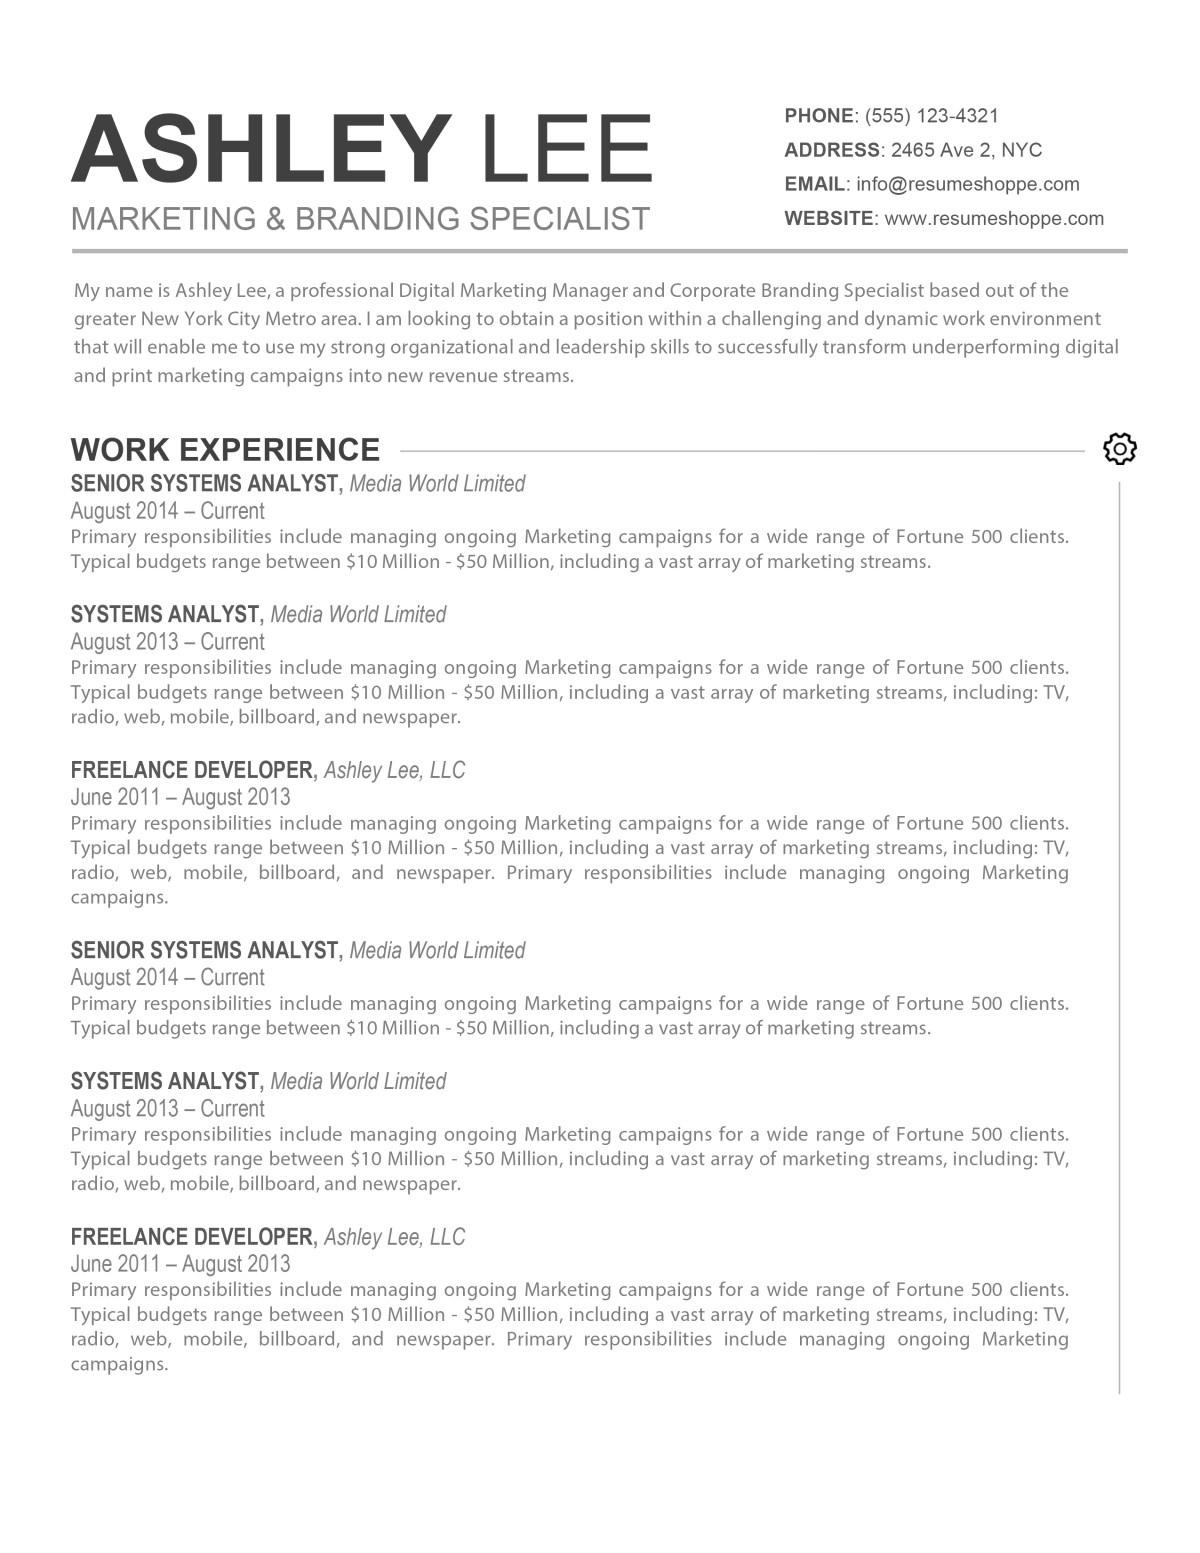 Help Create A Resume Excel A Wide Array Of Resume Templates To Choose From  Dadakan Resume Samples For Administrative Assistant with Resume Reel Excel A Wide Array Of Resume Templates To Choose From Game Designer Resume Word